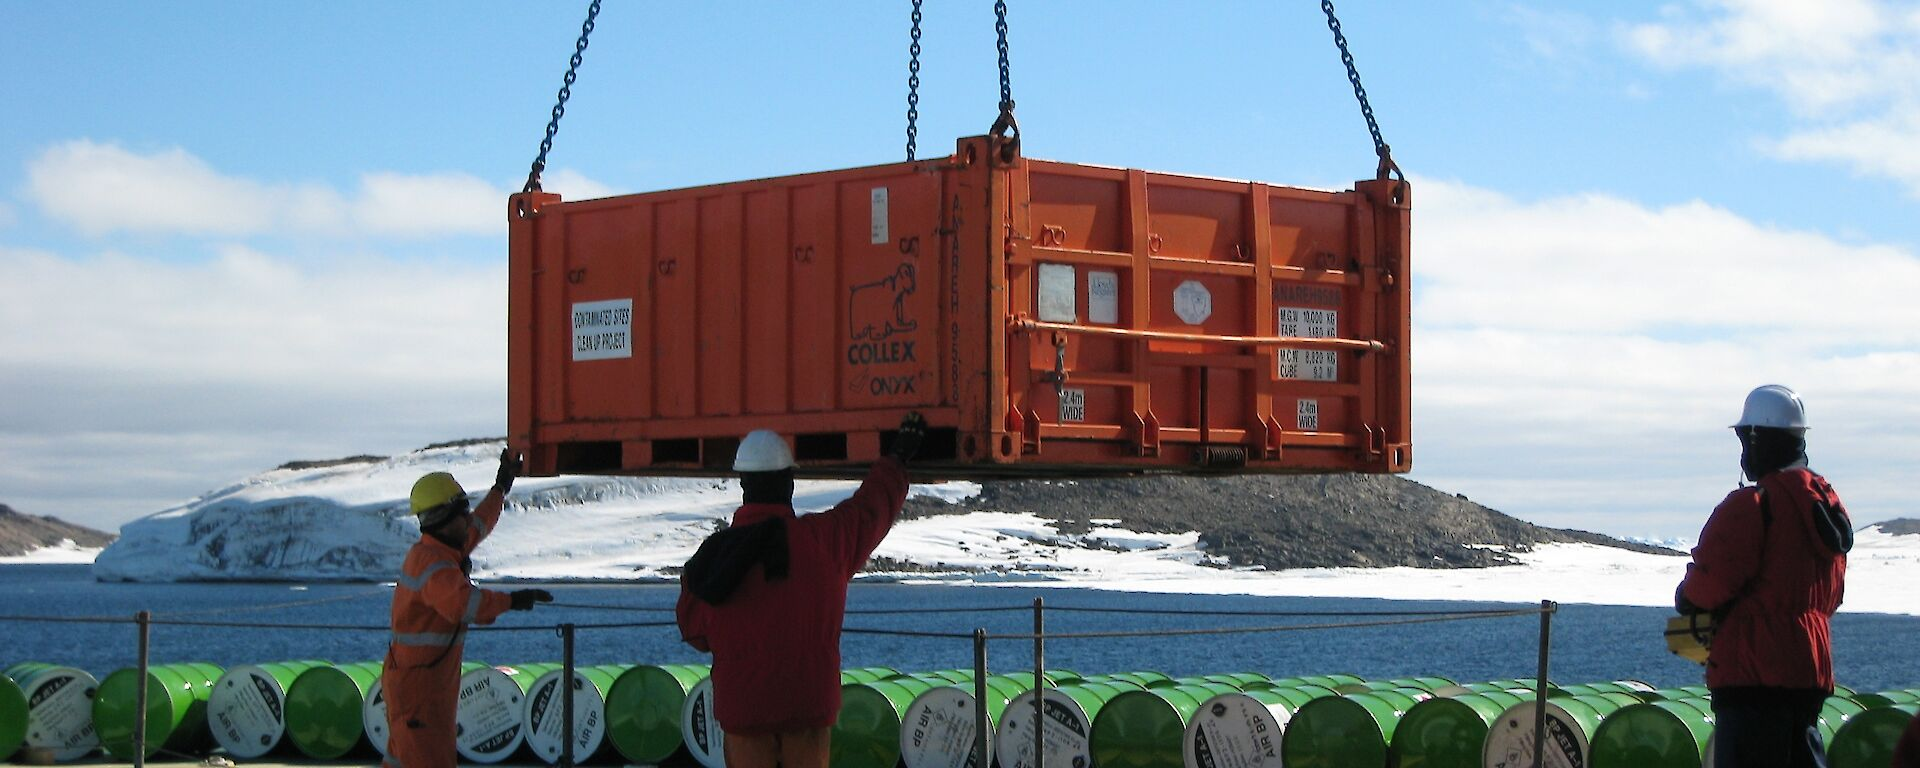 Workers on the Aurora Australis use a crane to unload cargo as part of resupply operations at Davis station